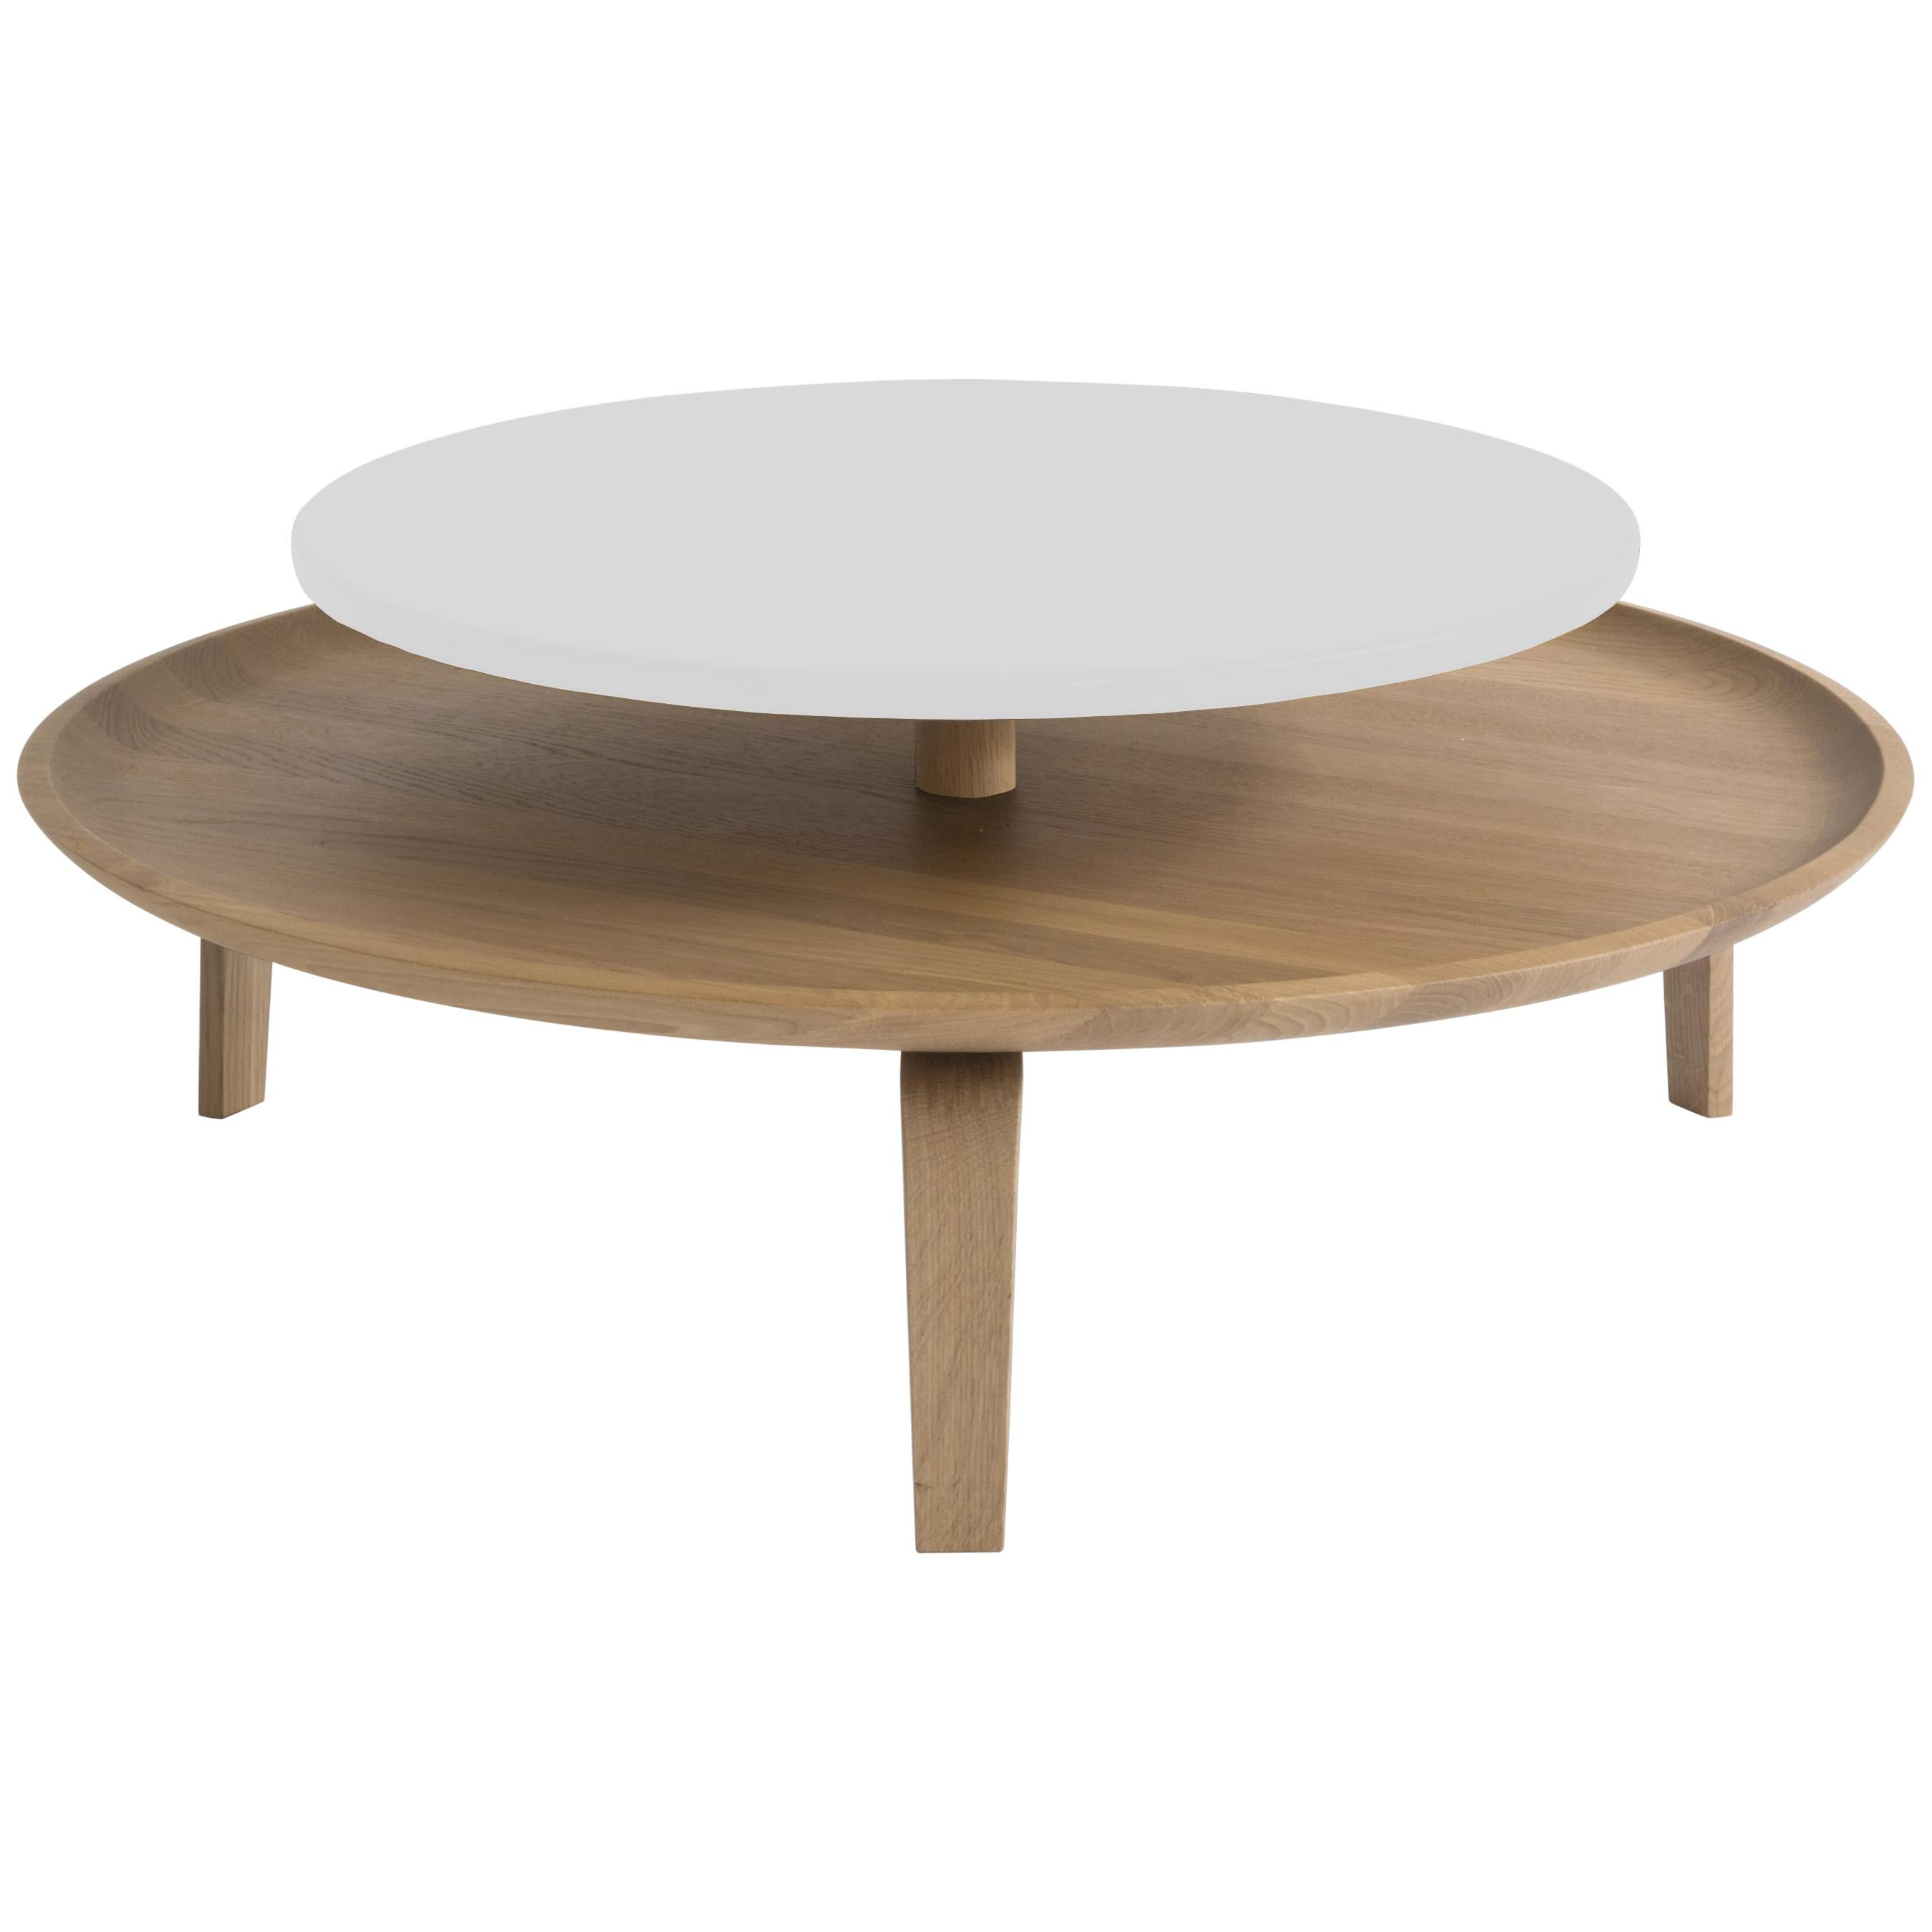 Secreto Round Coffee Table by Colé, Natural Oak and White Lacquered Top